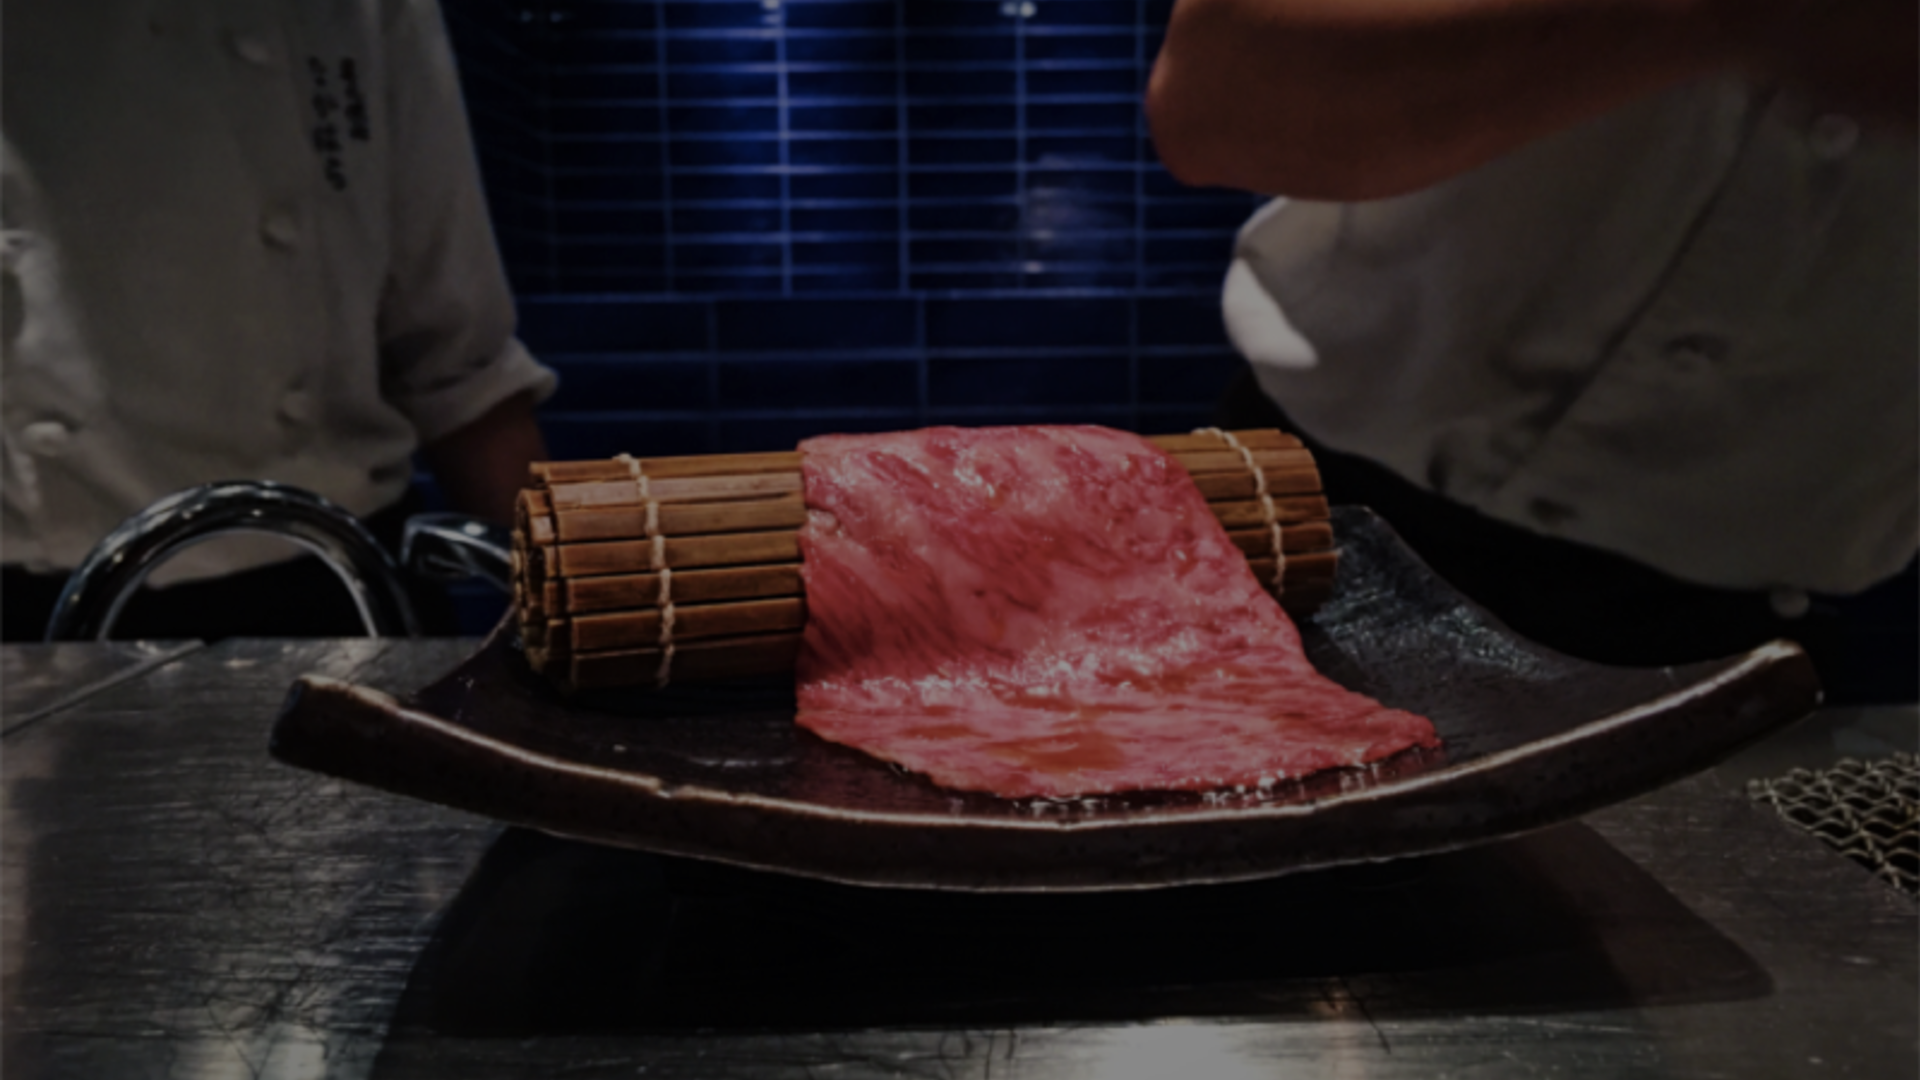 Journy's Definitive Guide To Tokyo's Best Dining